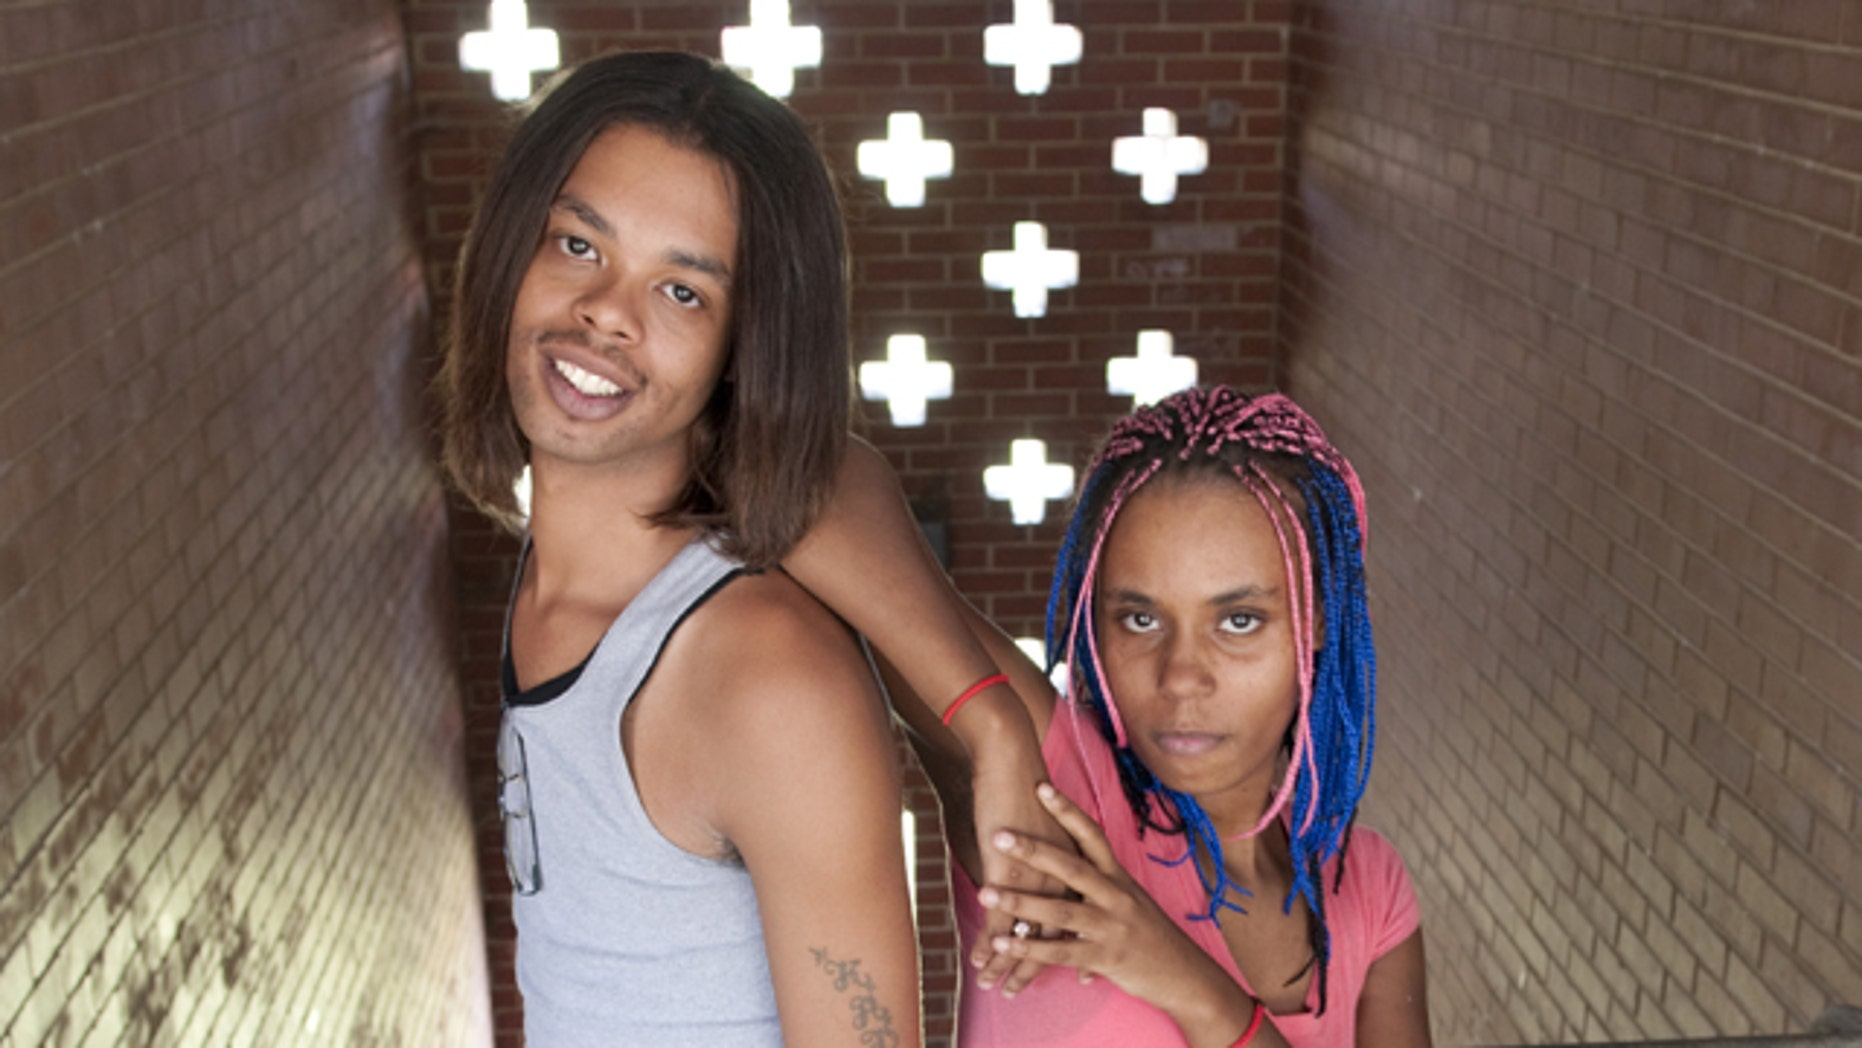 In this photo taken Aug. 27, 2010, Antoine Dodson, 24, and his sister, Kelly Dodson, 22, pose in the stairwell of the apartment complex where Kelly was attacked in Huntsville, Ala. Antoine Dodson's angry, head-shaking TV interview about an attempted rape against his younger sister in her home has turned into a chart-topping iTunes song. Some suggest that the 24-year-old college student's online rant plays to African-American stereotypes.